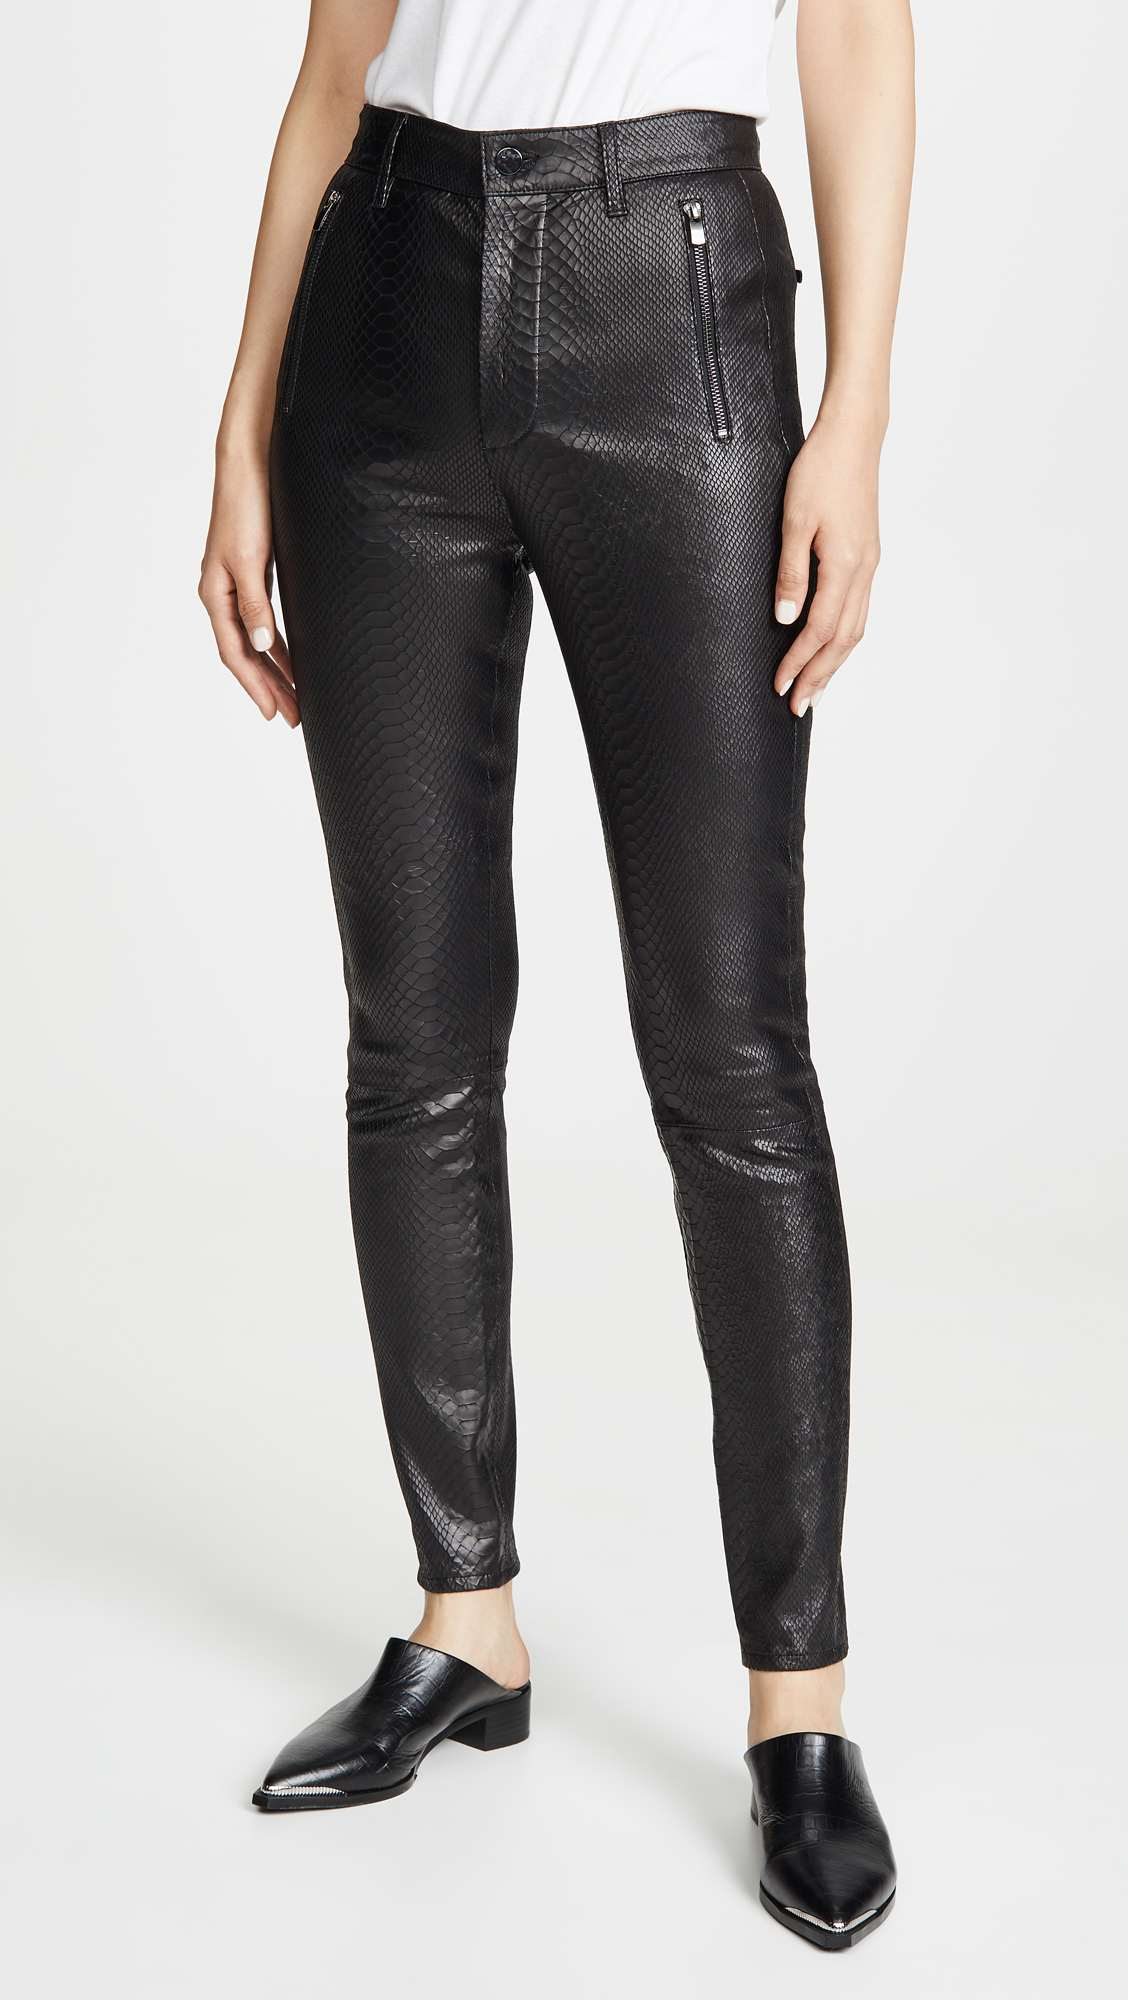 Lora Super High Rise Leather Skinny Pants by J Brand, available on shopbop.com for $768.6 Olivia Culpo Pants Exact Product